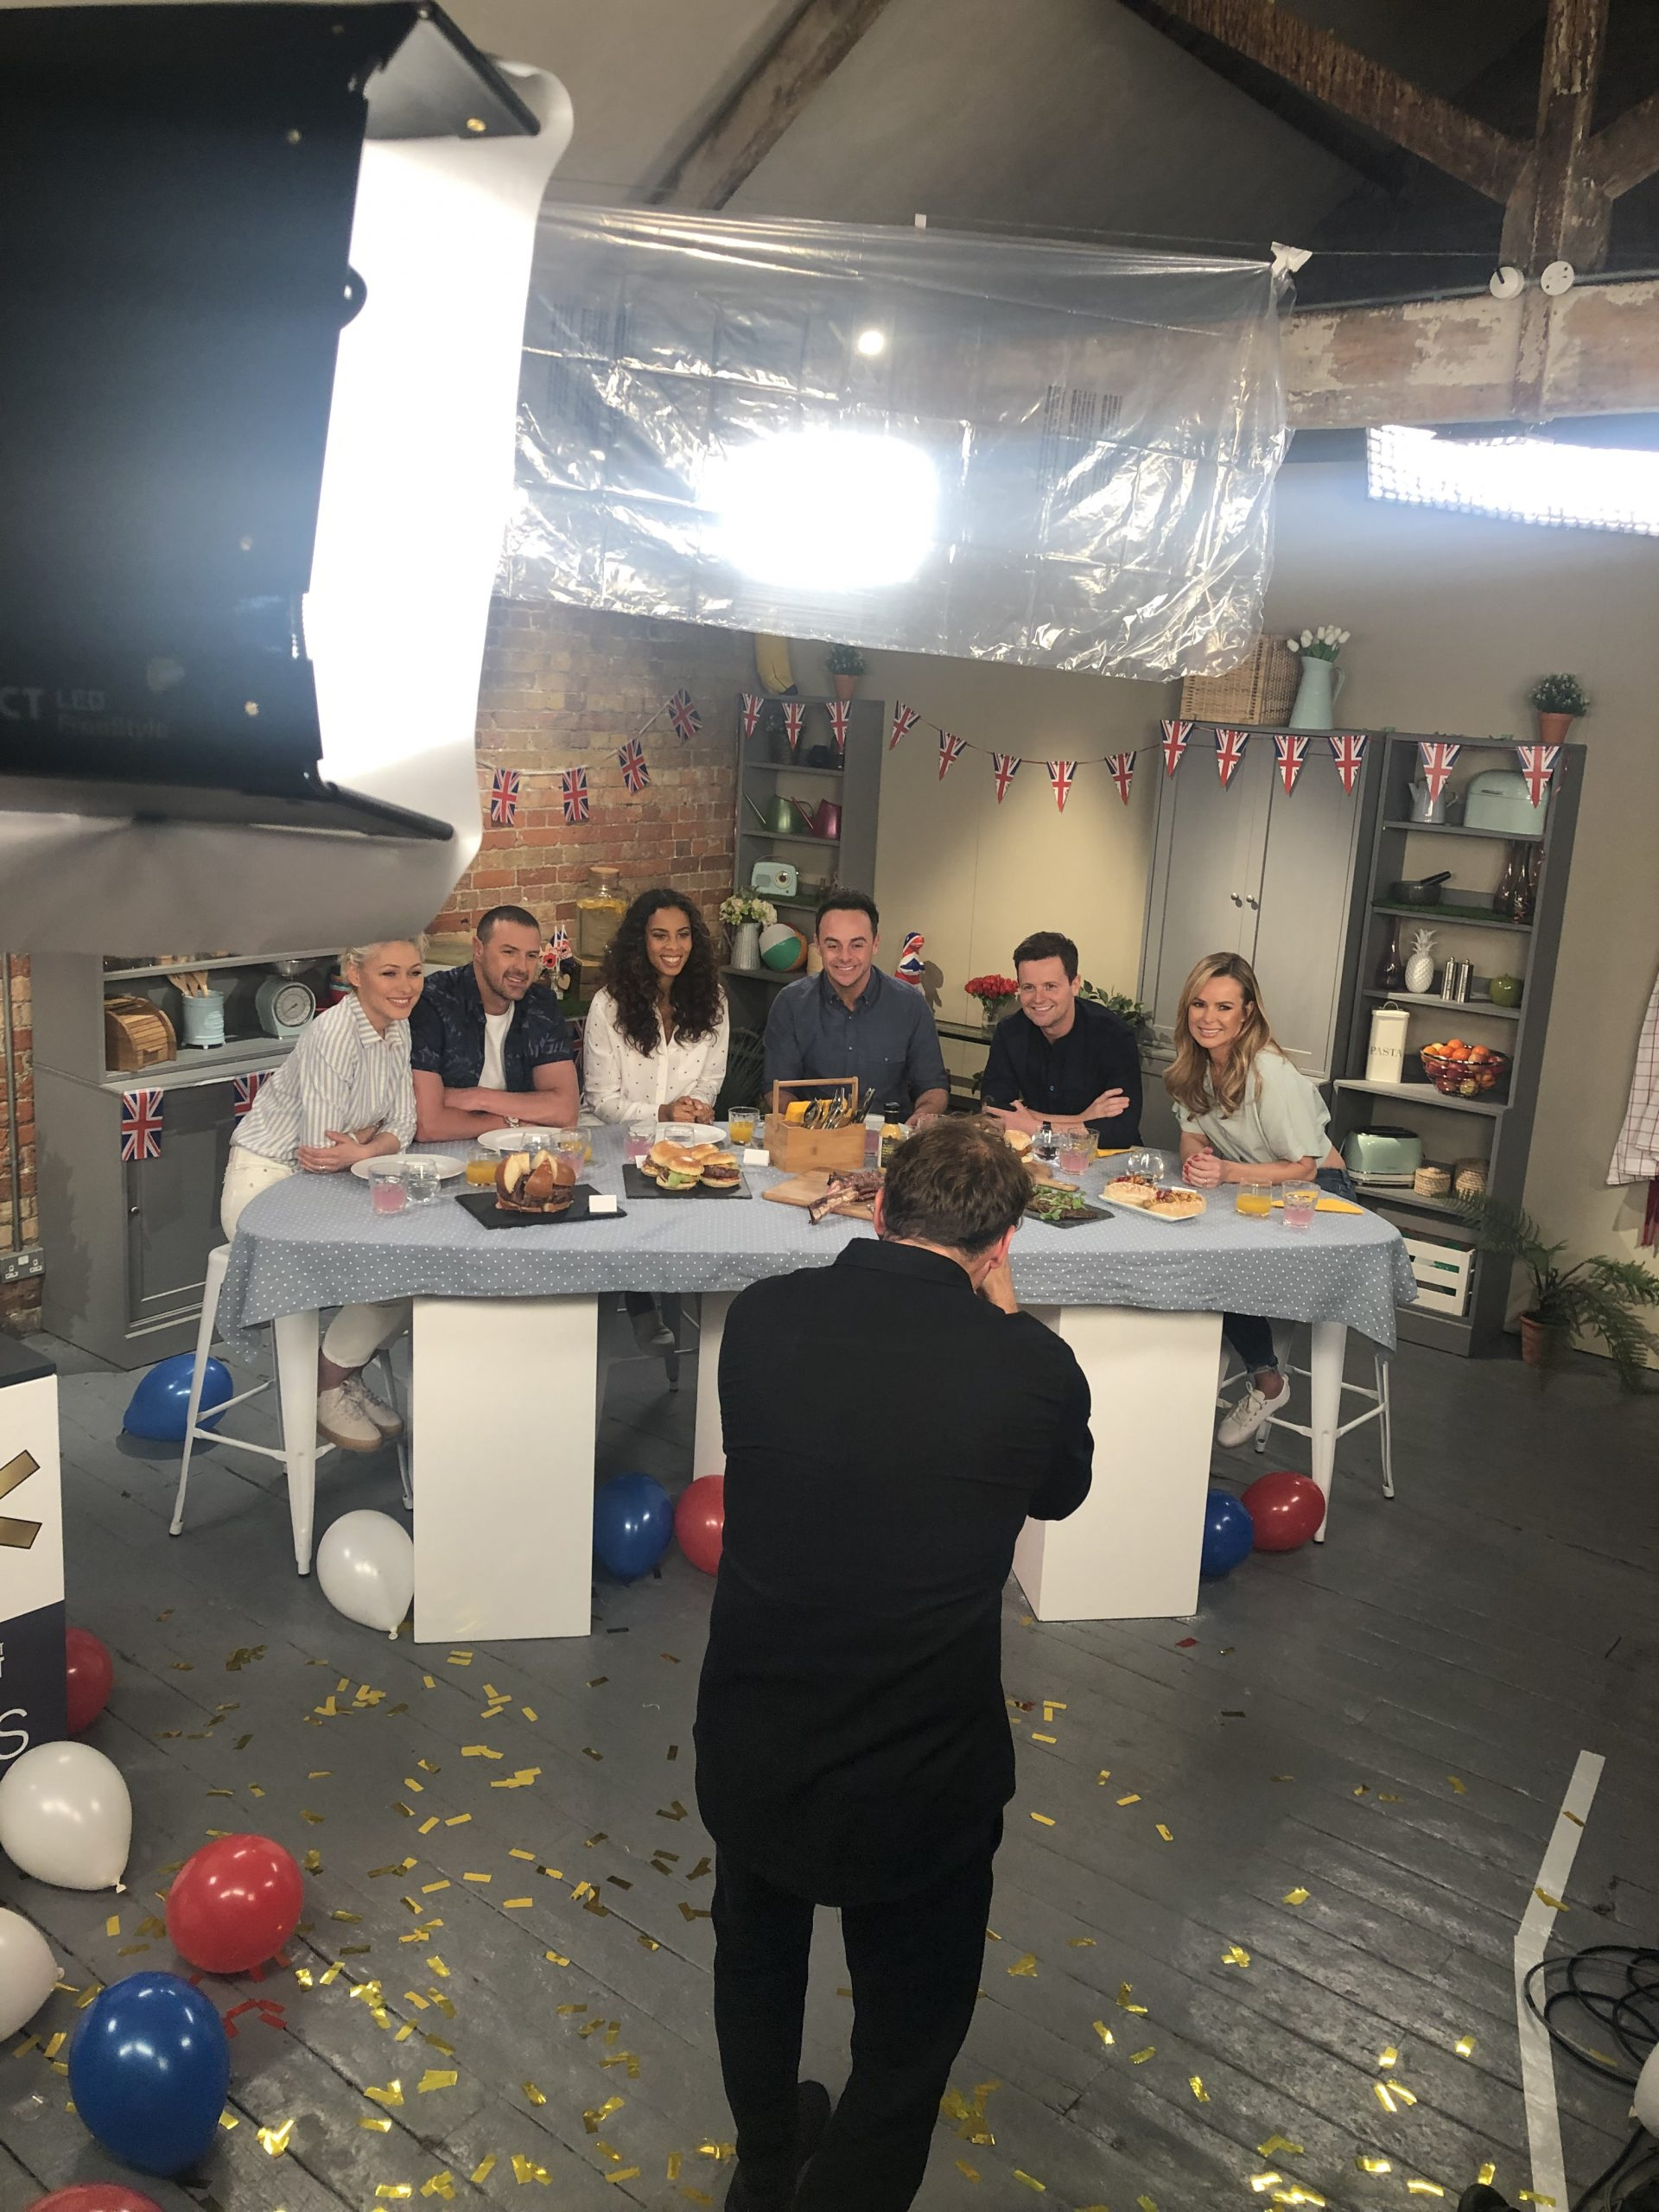 Emma Willis, Paddy McGuiness, Rochelle Humes, Ant & Dec, Amanda Holden on set